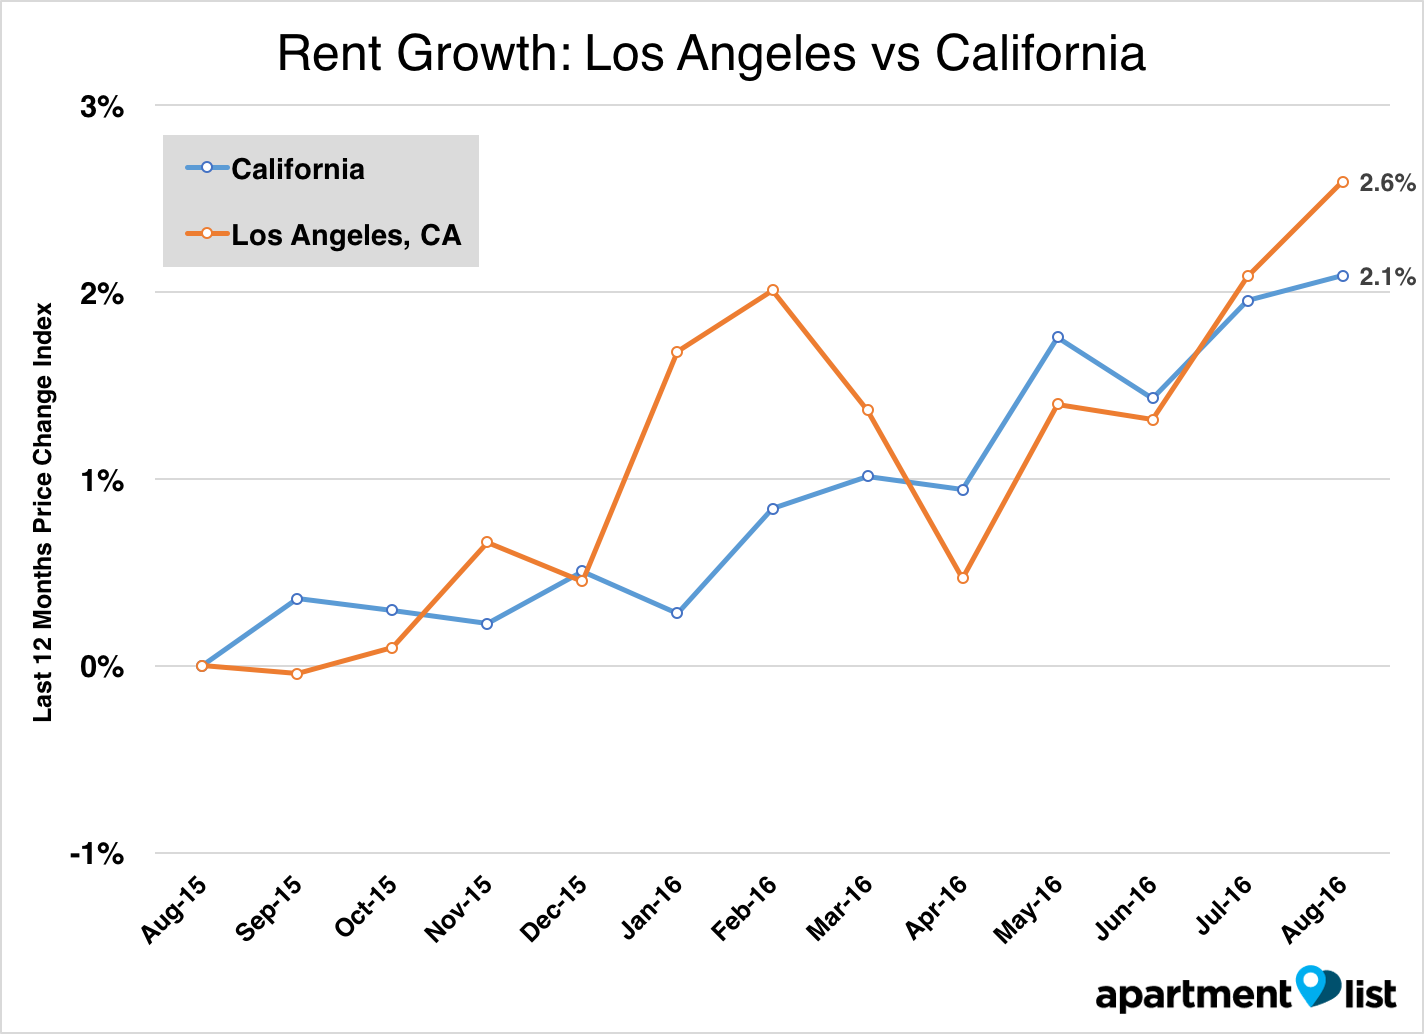 Los Angeles rent growth